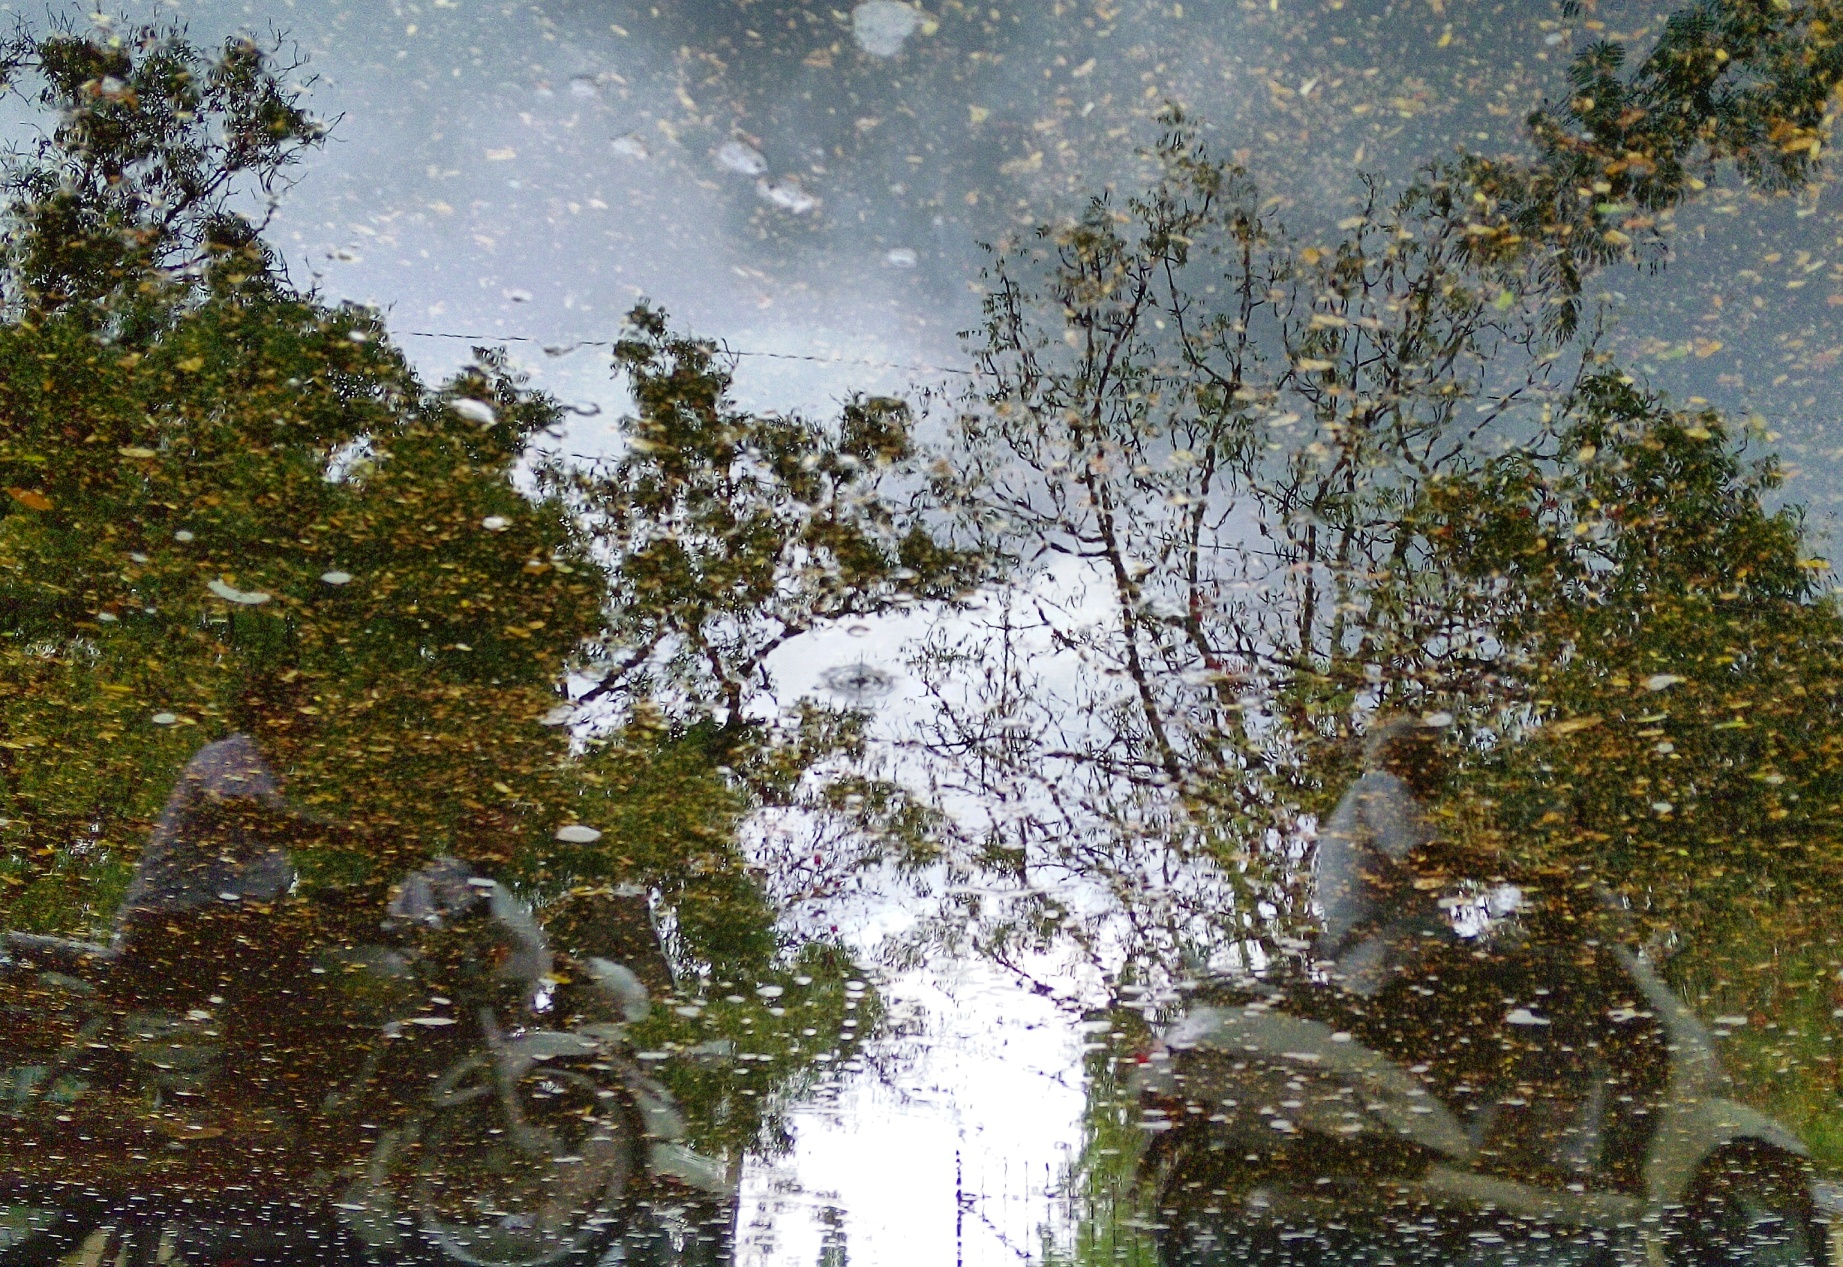 Trees reflected in a pool of water on road